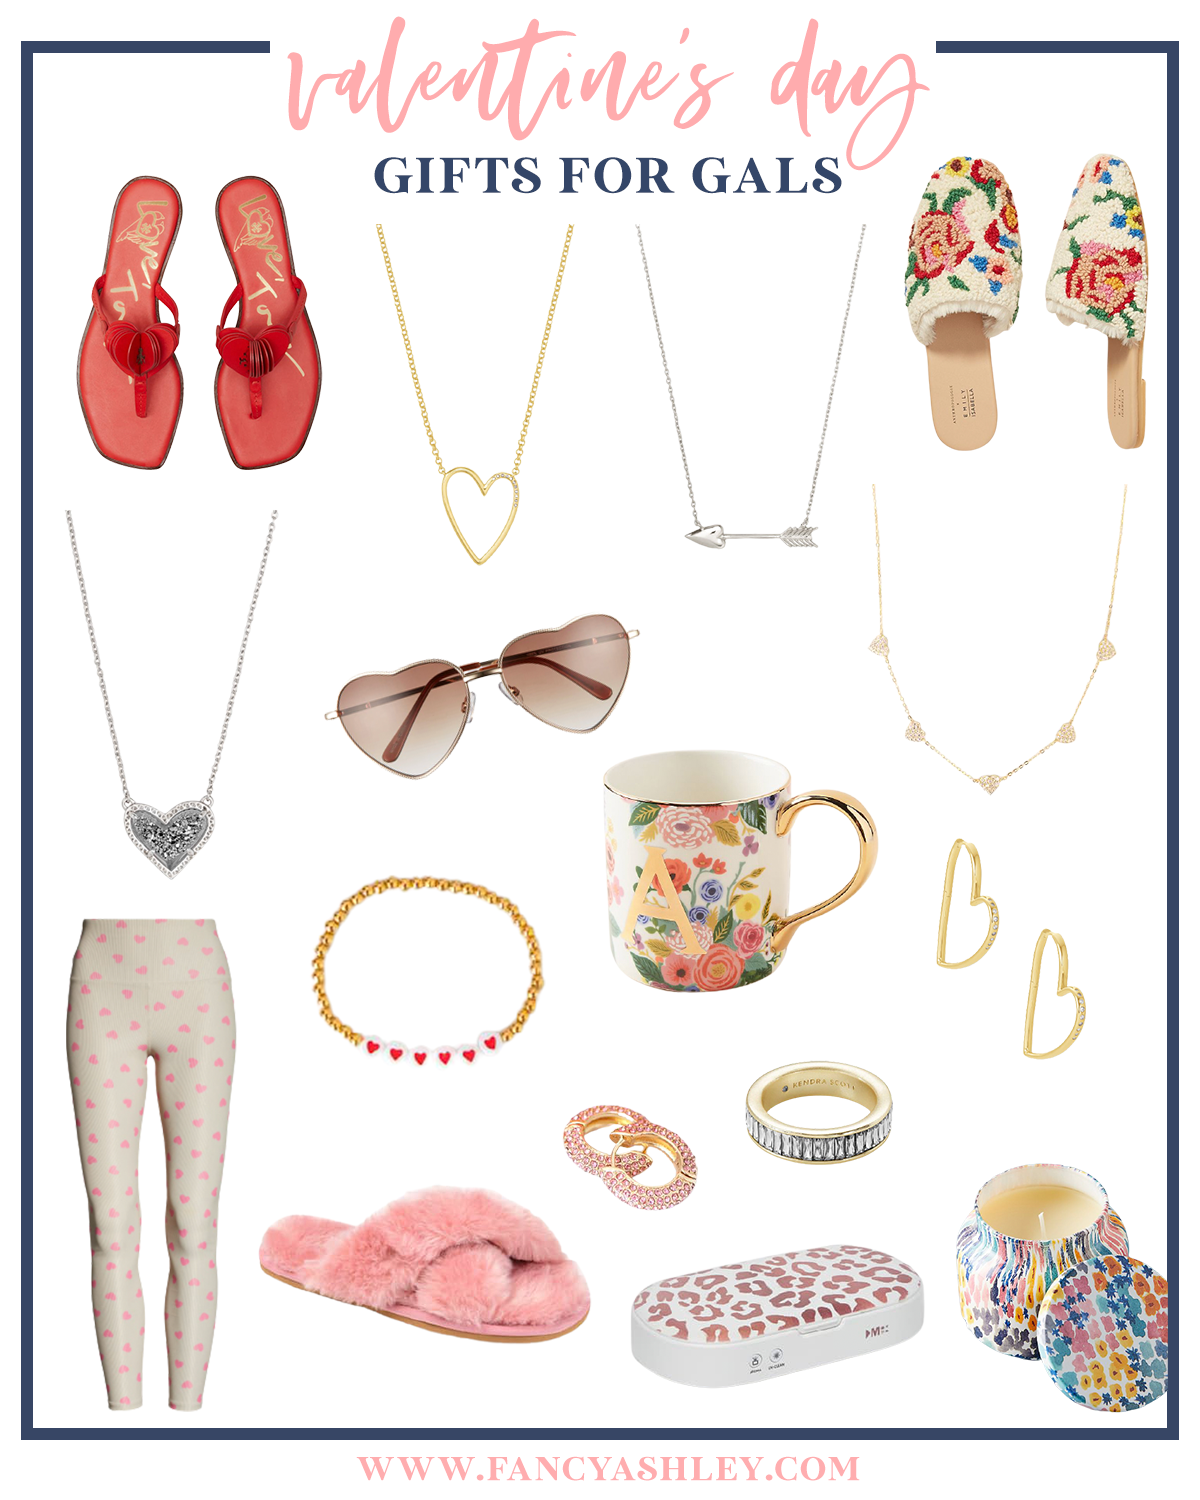 Valentine's Day Gift Ideas by popular Houston life and style blog, Fancy Ashley: collage image of red flip flop sandals, heart frame sunglasses, monogram floral print mug, heart hoop earrings, gold and heart bead bracelet, cz ring, pink fuzzy slippers, heart pendant necklace, arrow necklace, gold heart necklace, pink cz hoop earrings, candle, floral print mules, heart print leggings, and uv light sanitzer.